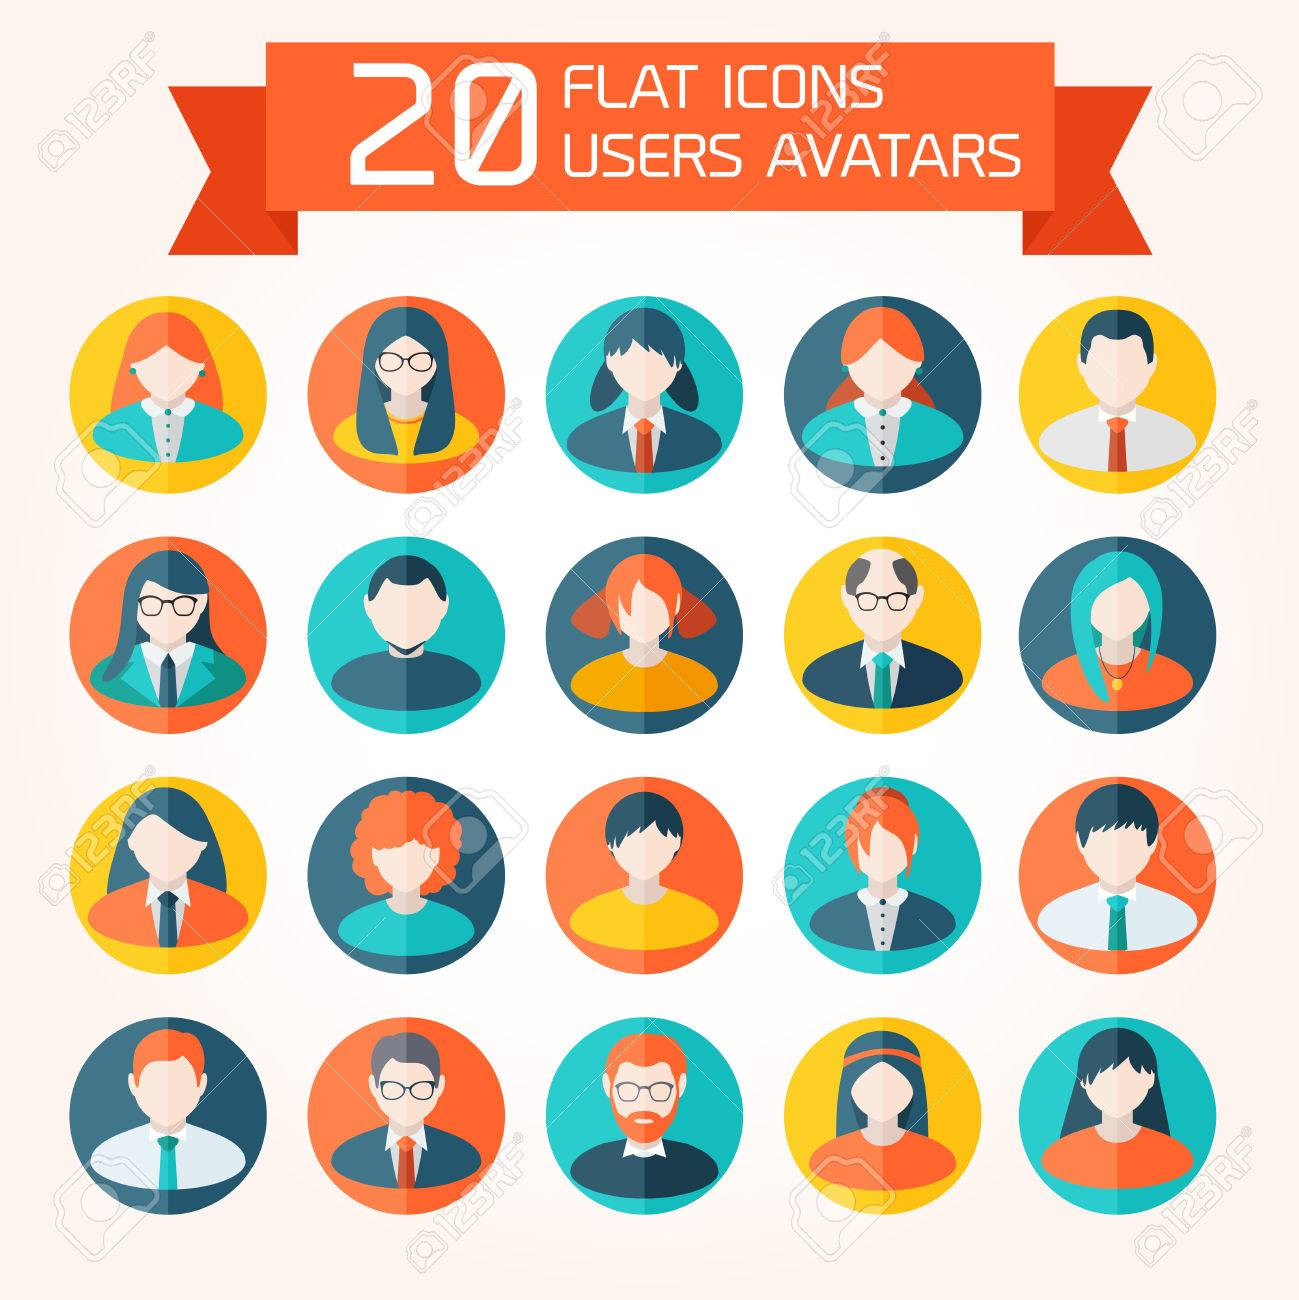 flat user avatar icons set without background royalty free cliparts